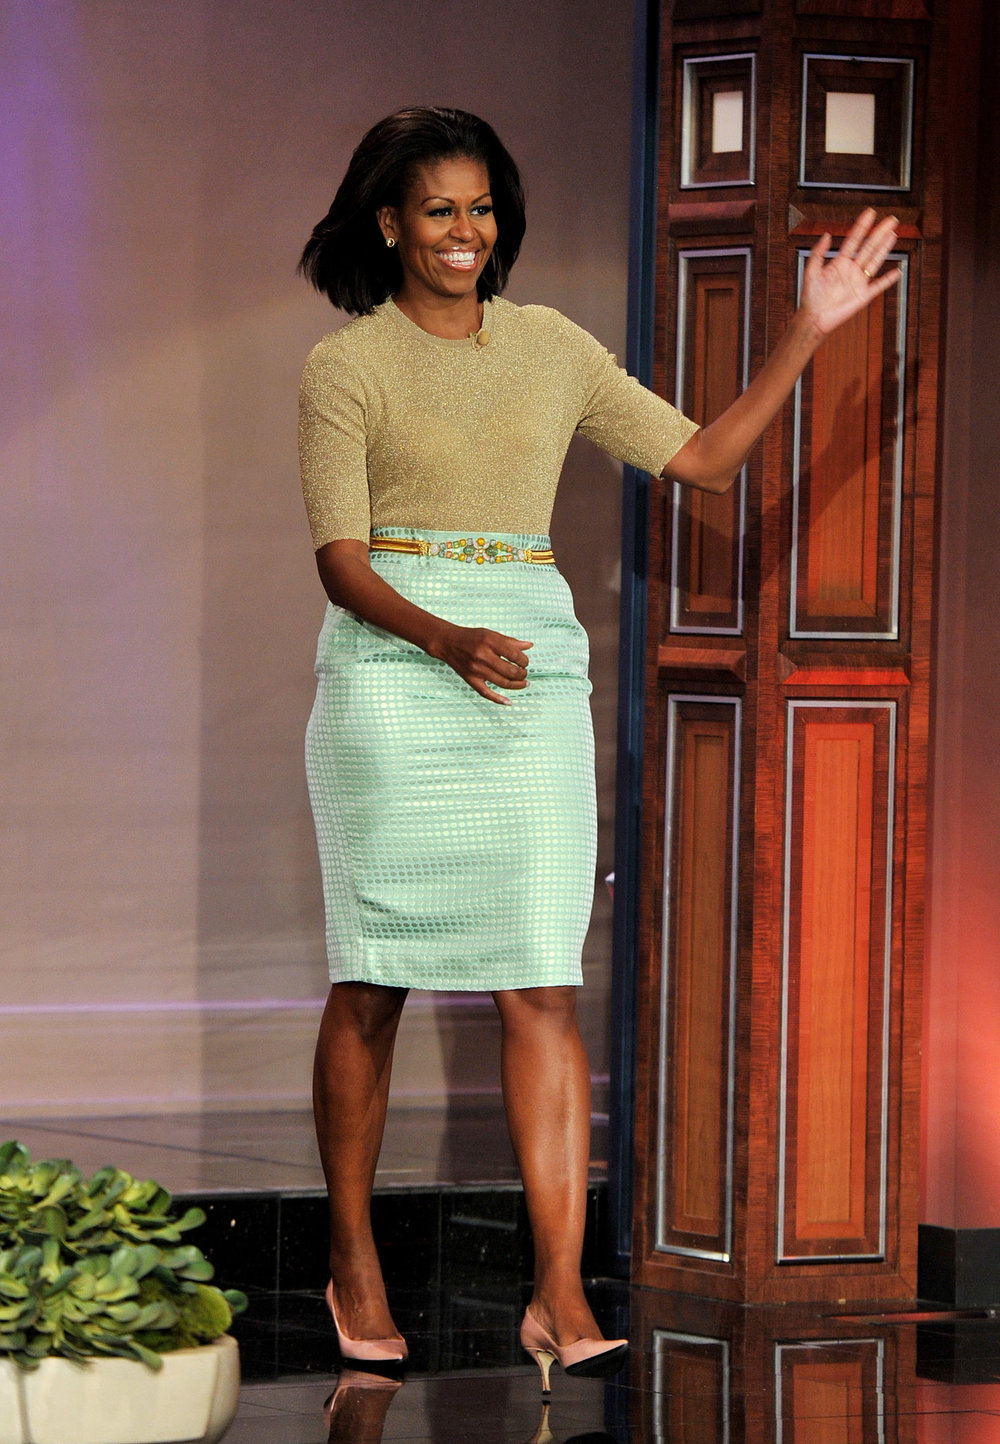 Michelle-Obama-First-Lady-Style.jpg